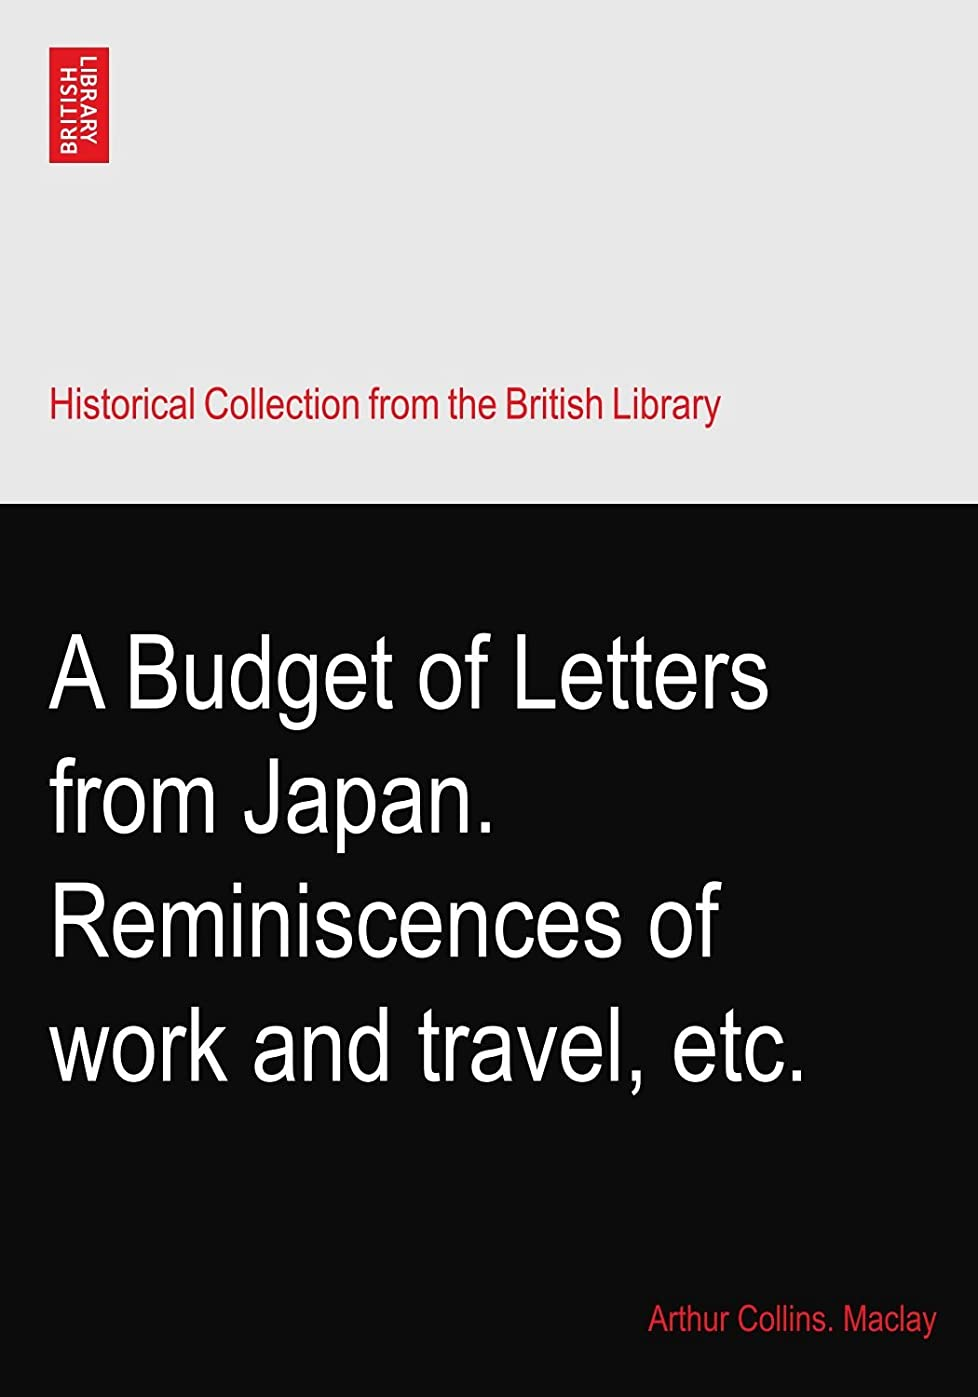 ライラックマルクス主義完全に乾くA Budget of Letters from Japan. Reminiscences of work and travel, etc.